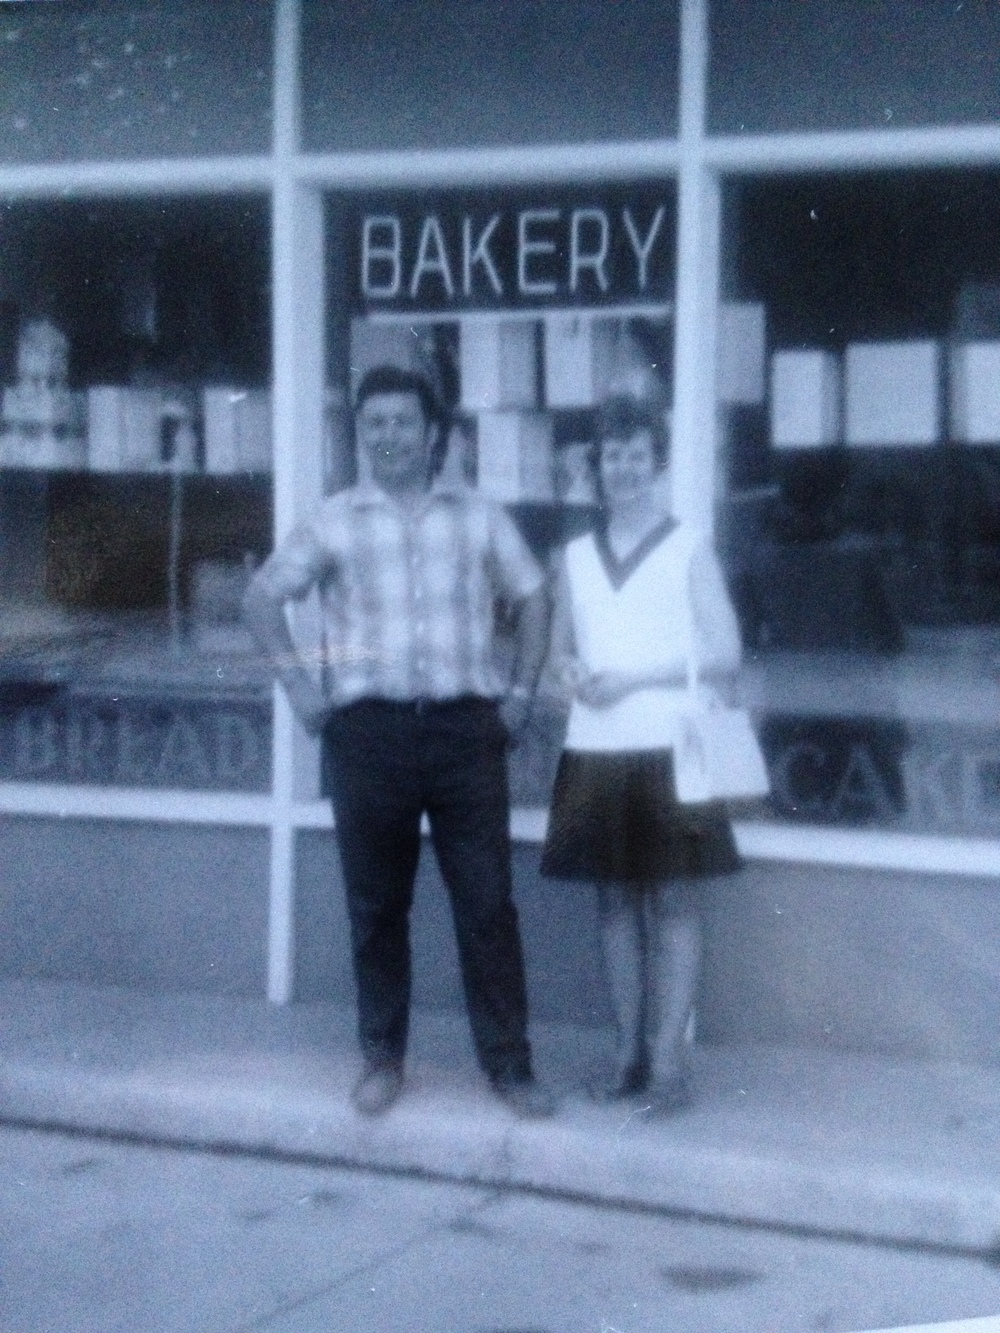 Joe and Evelyn in front of the Golden Bakery, 1971.